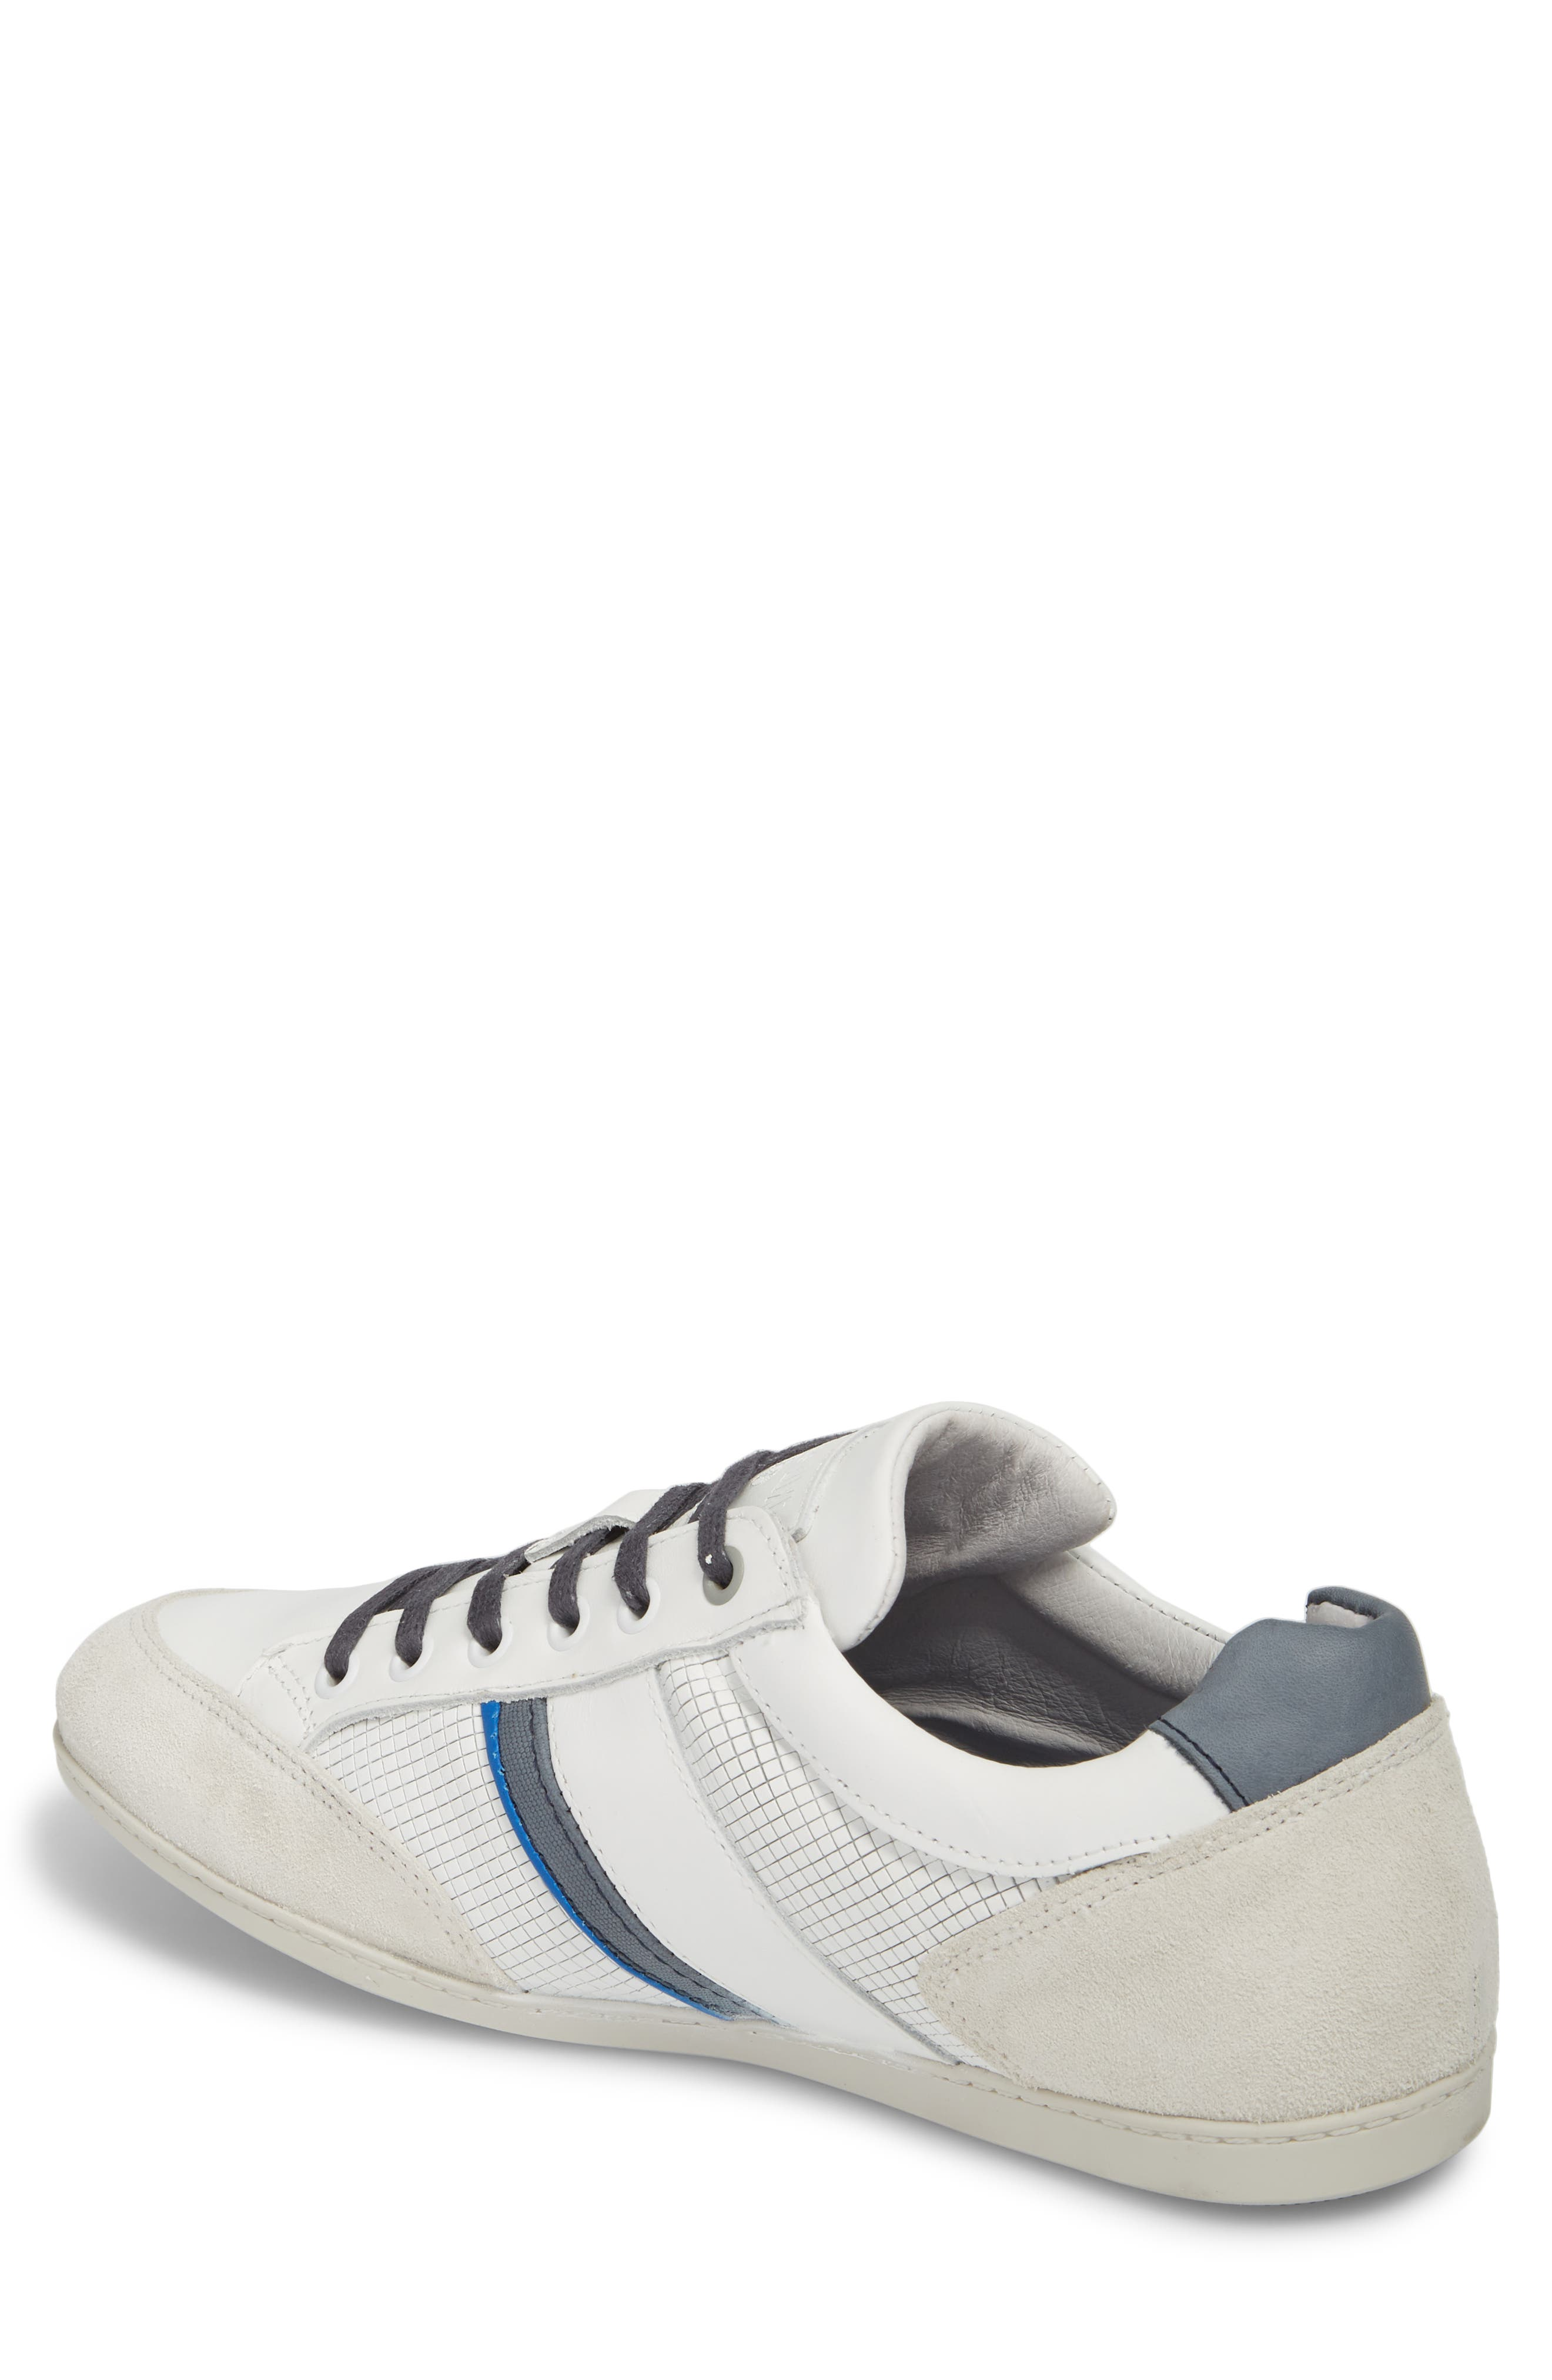 Bahamas Low Top Sneaker,                             Alternate thumbnail 2, color,                             Off White/ Navy Leather